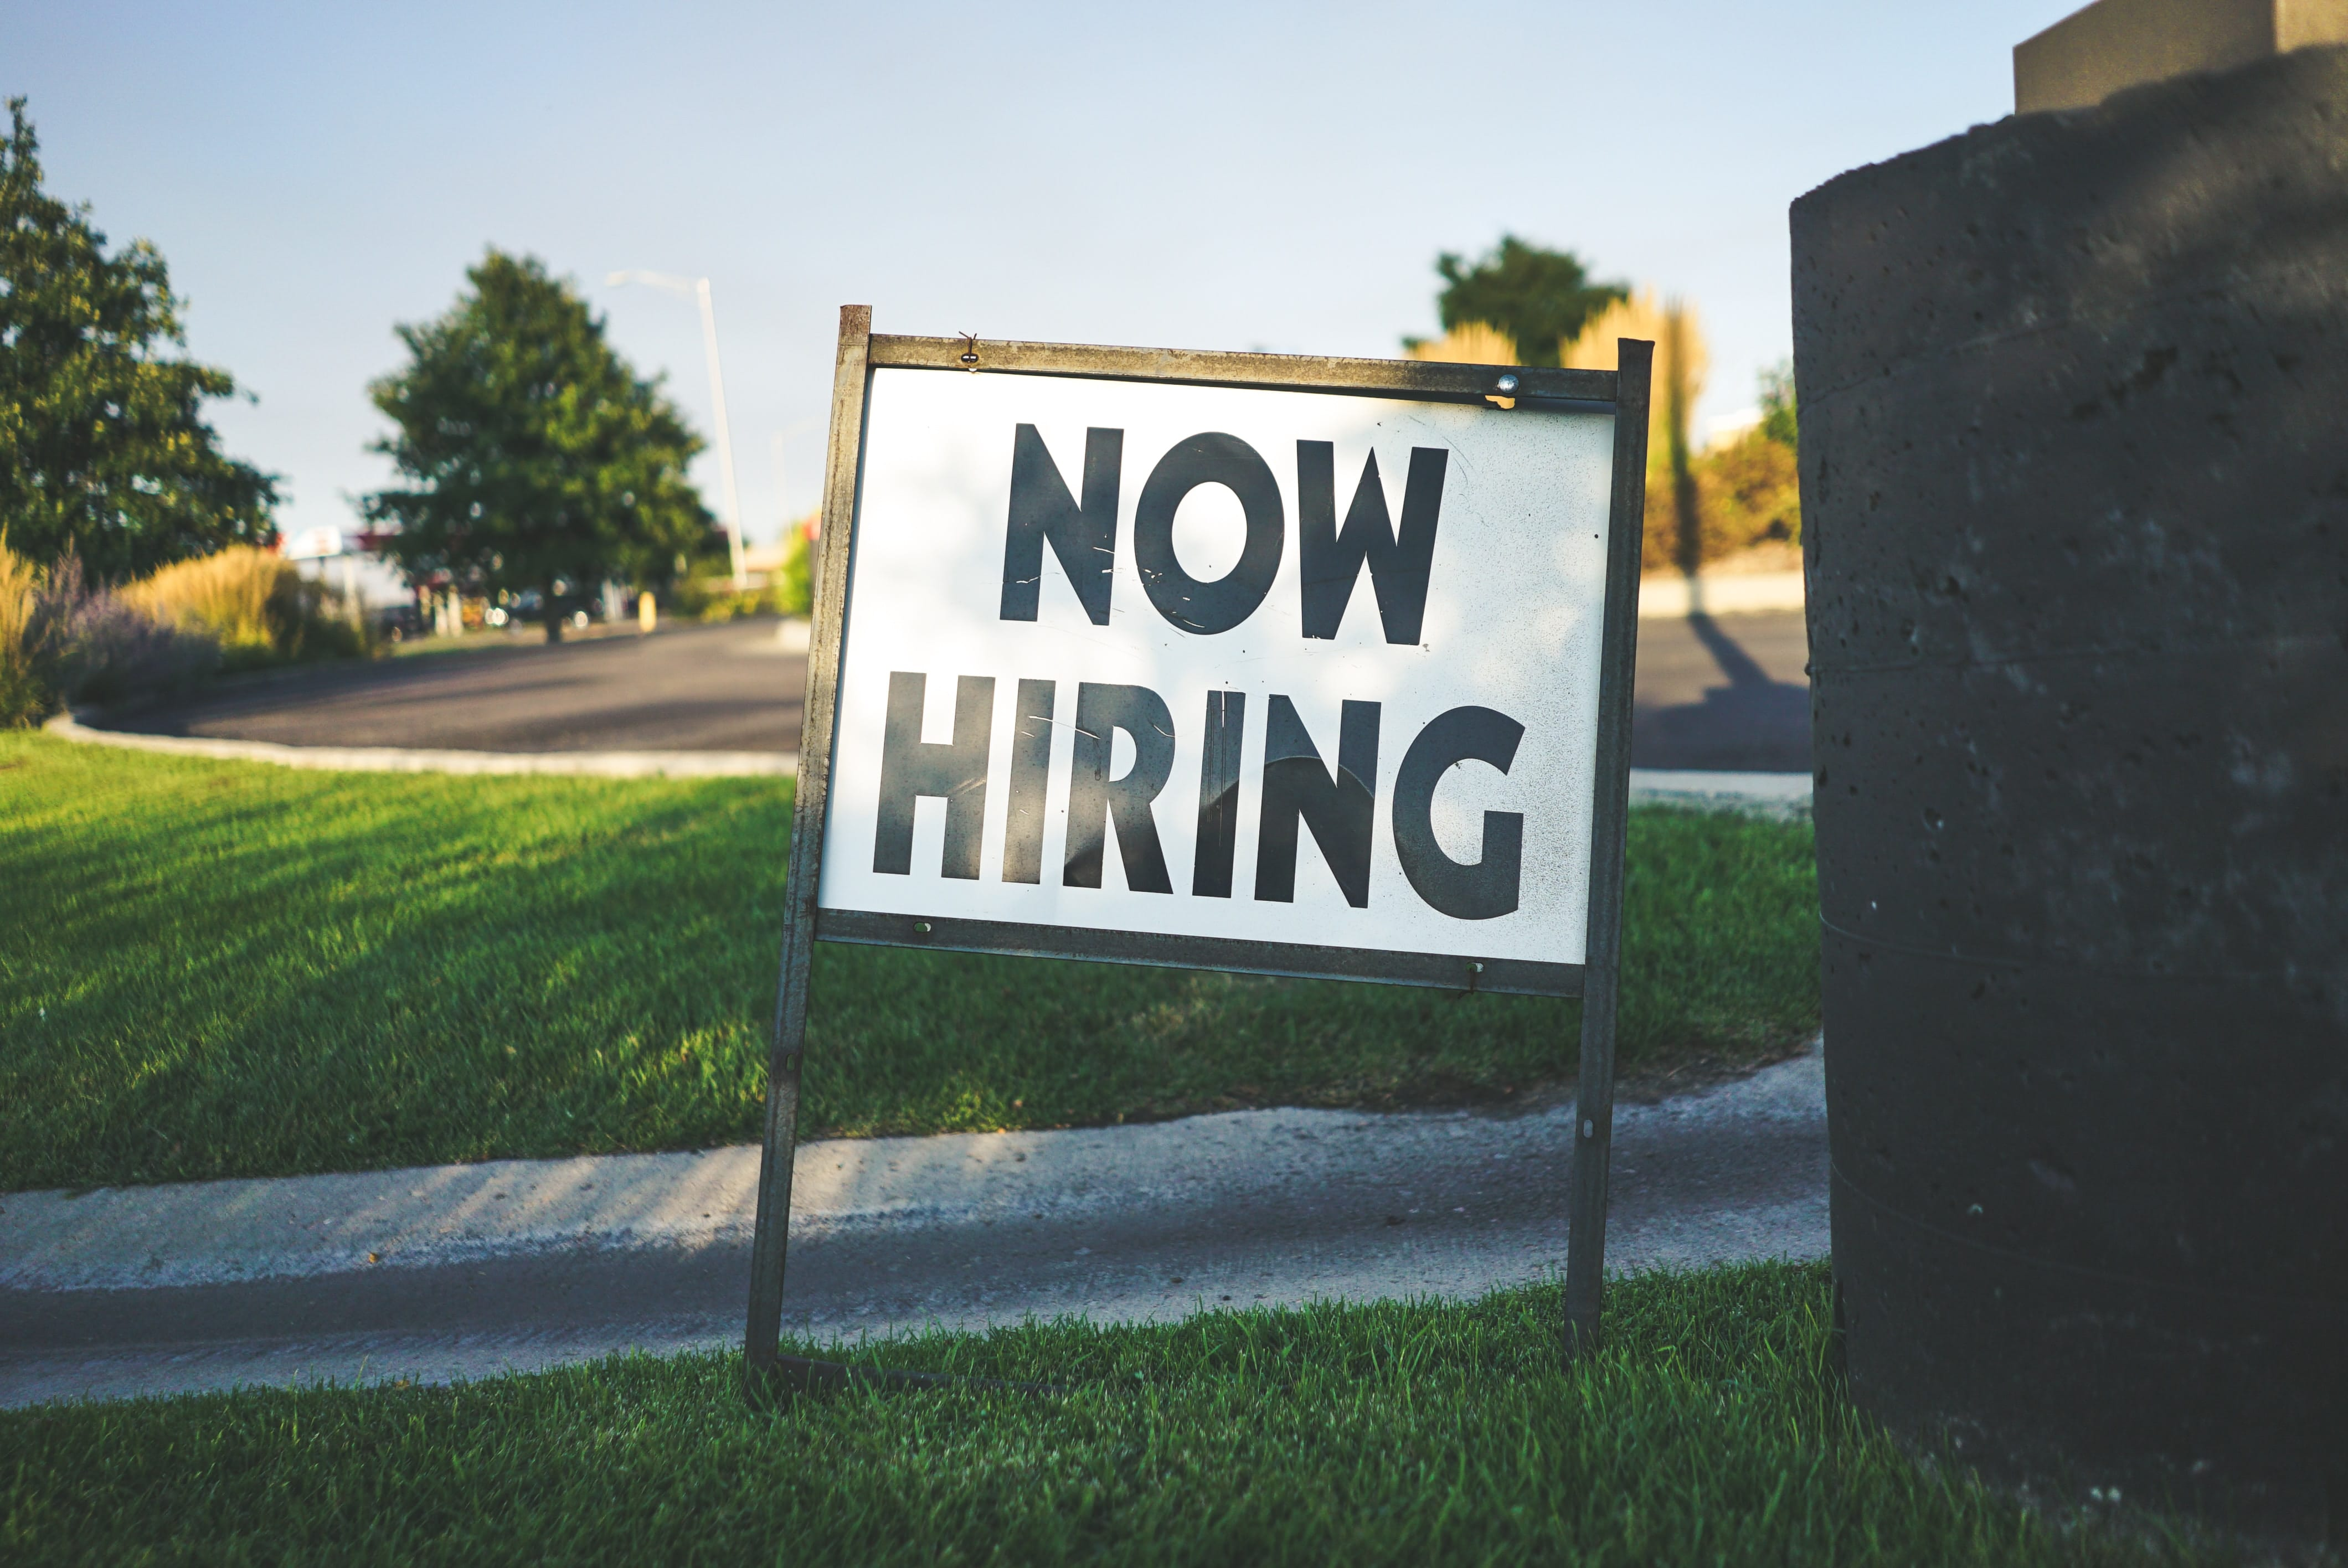 Now Hiring sign on lawn; image by Free To Use Sounds, via Unsplash.com.